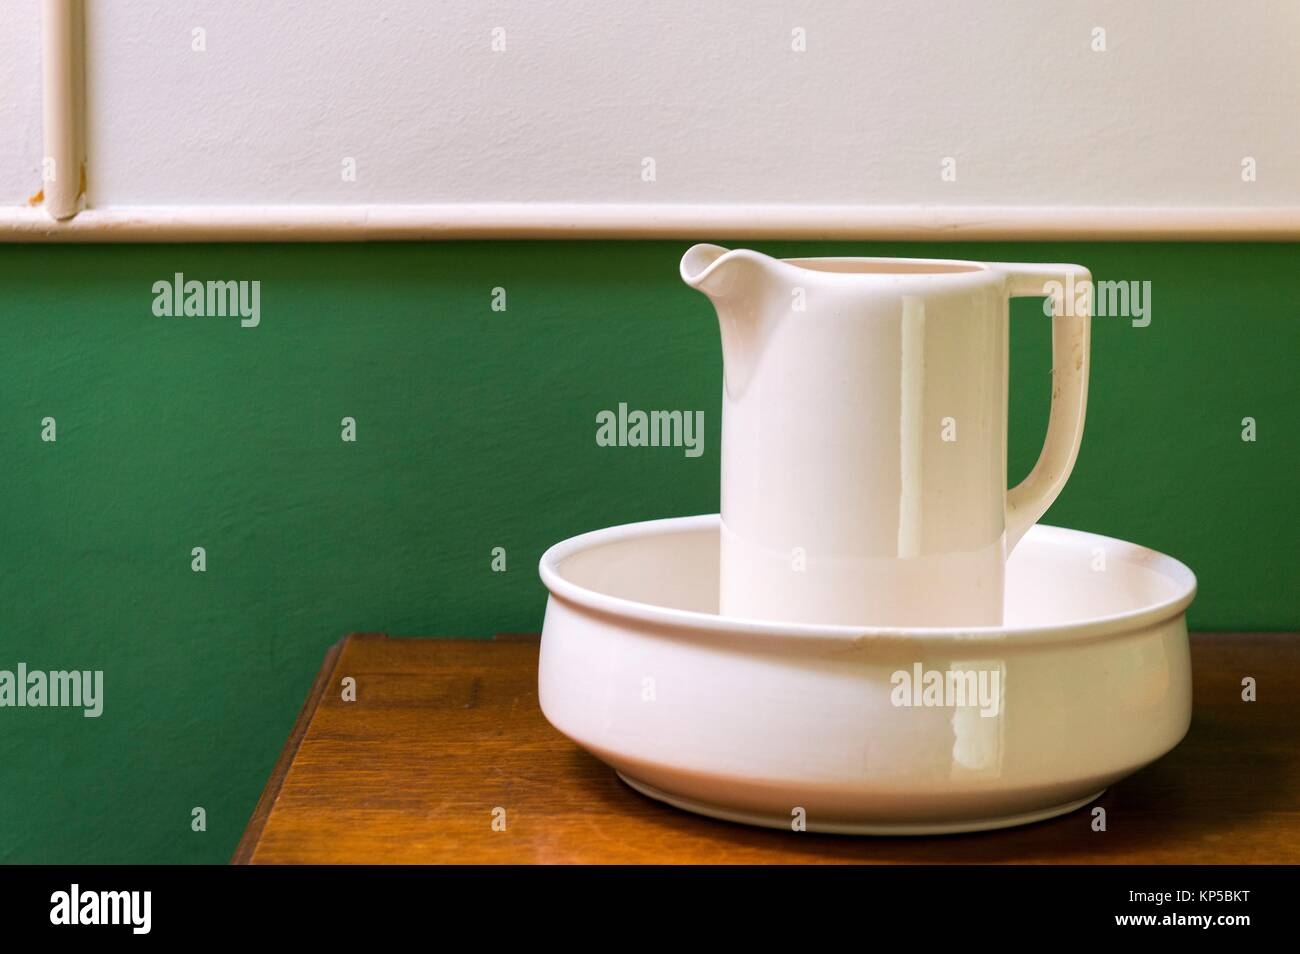 Tilburg, Netherlands. Ewer, watercan and bowl placed on a dressoir against a green and white interior wall. Stock Photo